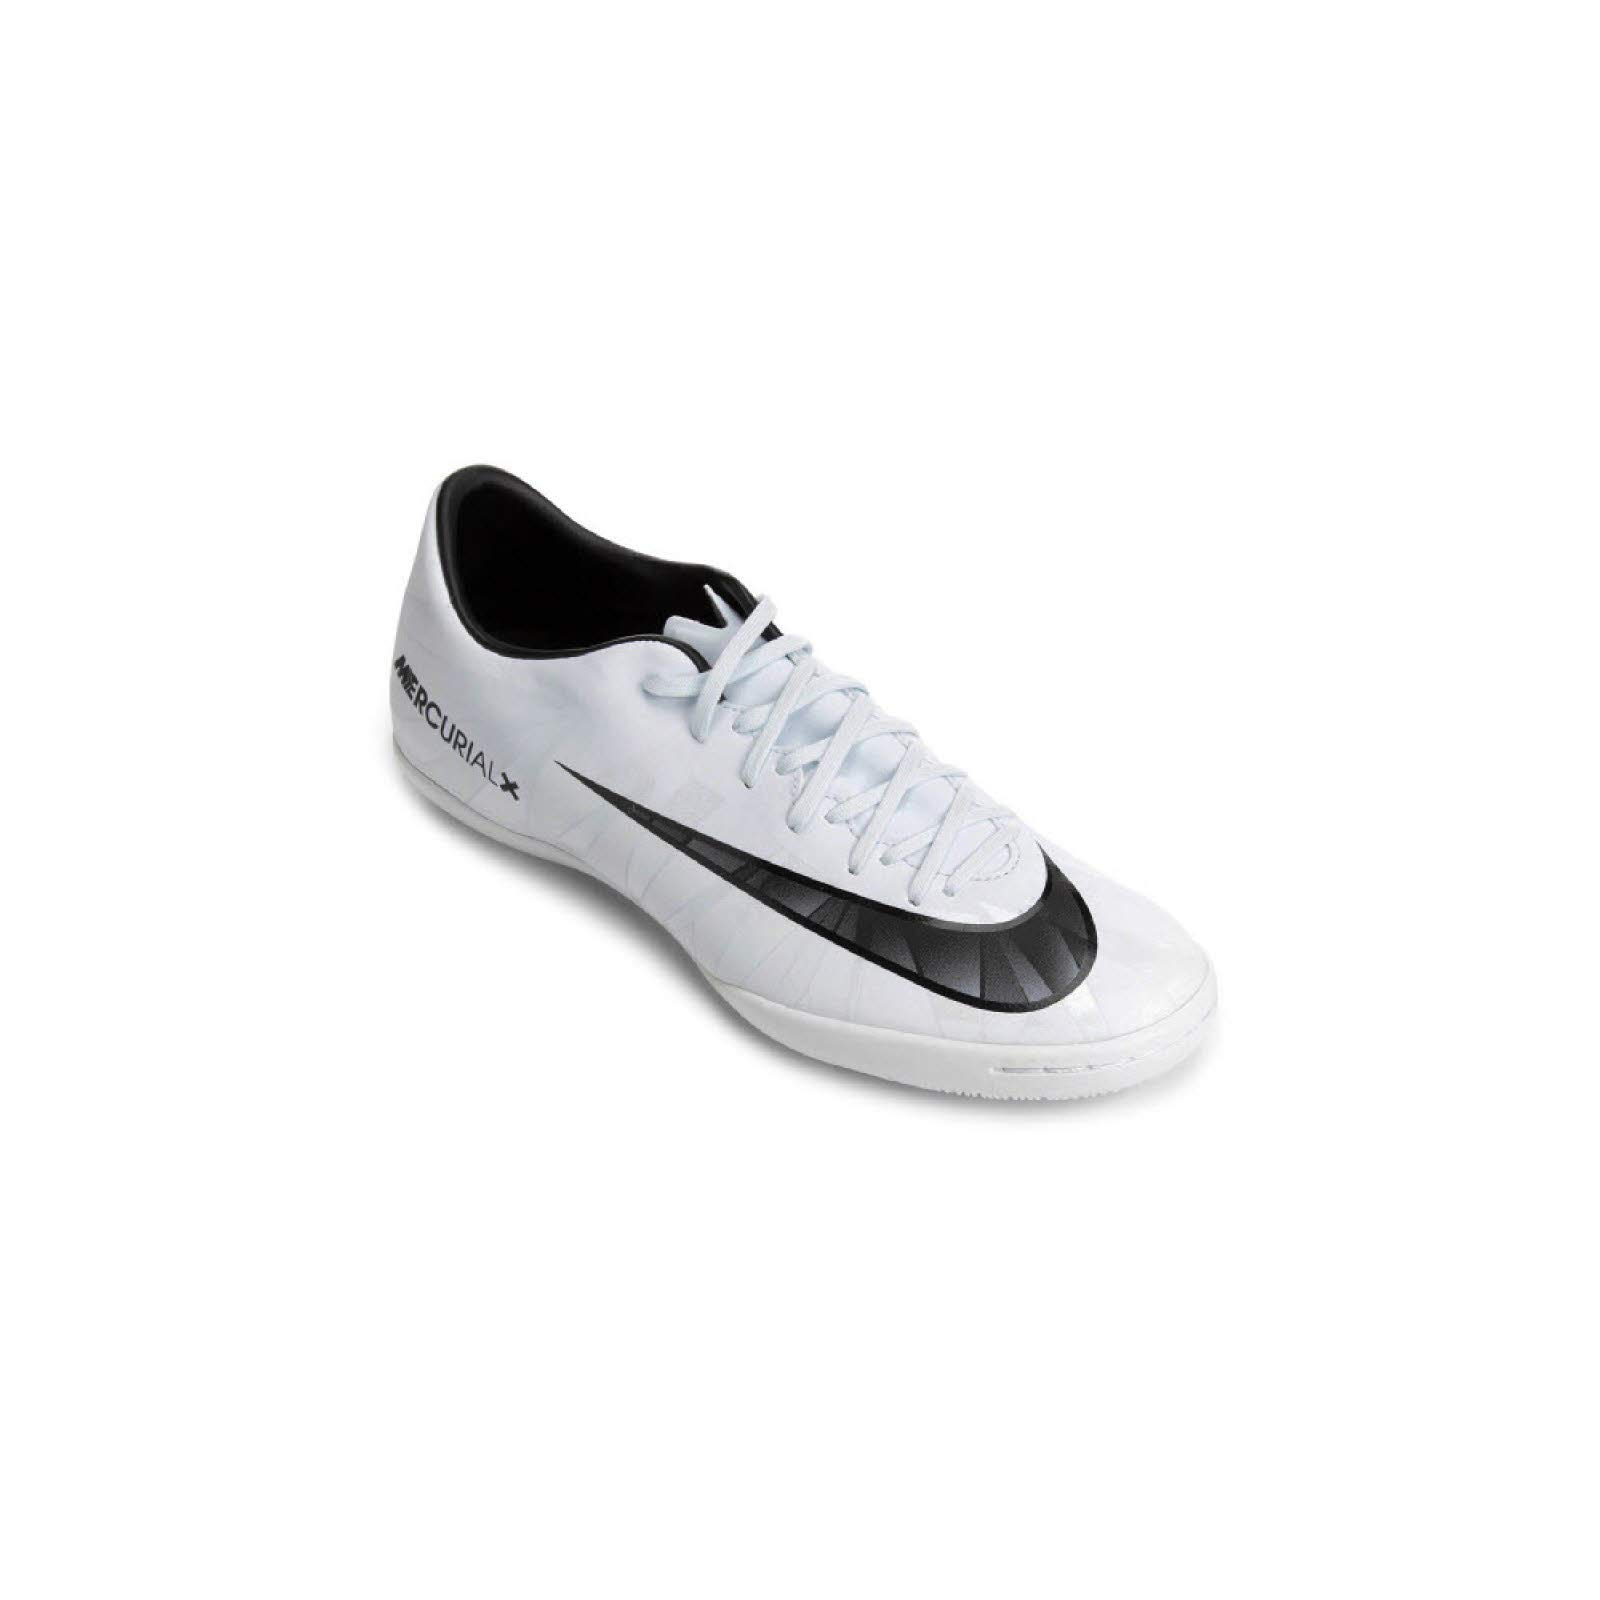 designer fashion a65a1 31d27 Nike Men's MercurialX Victory VI CR7 (IC) Indoor Soccer Cleat Blue  Tint/Black/White Size 8 M US